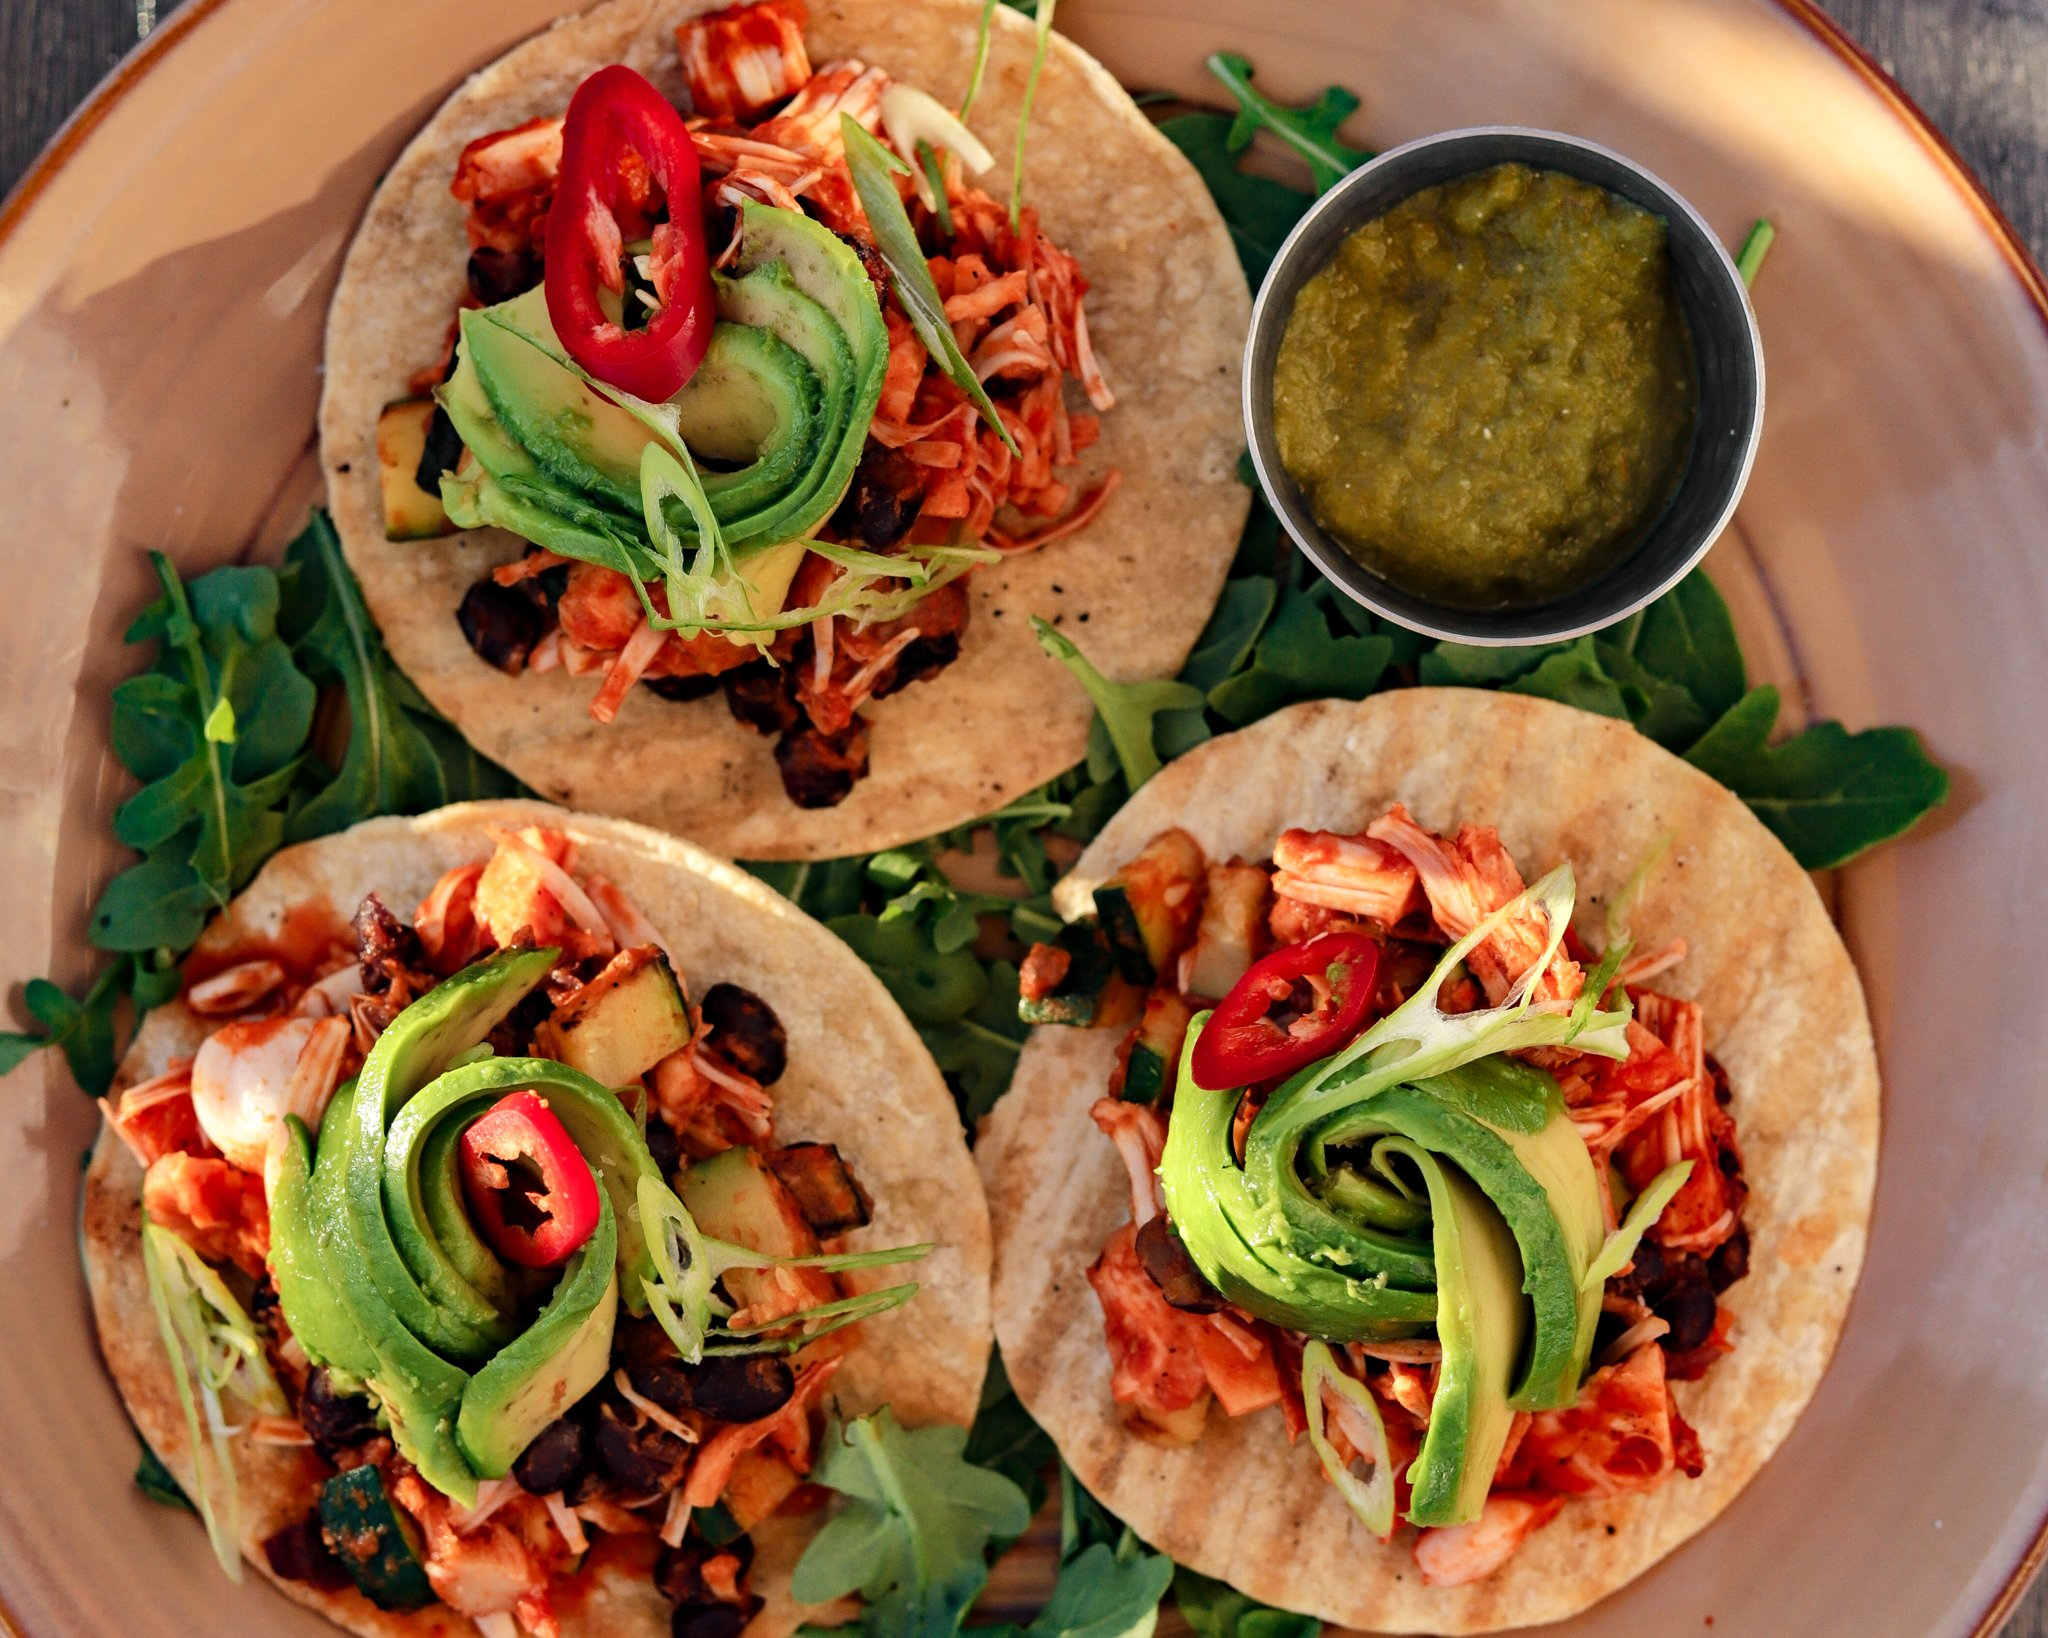 Plate of 3 tortillas topped with grilled jackfruit and bright green avocado arranged in a circular motion